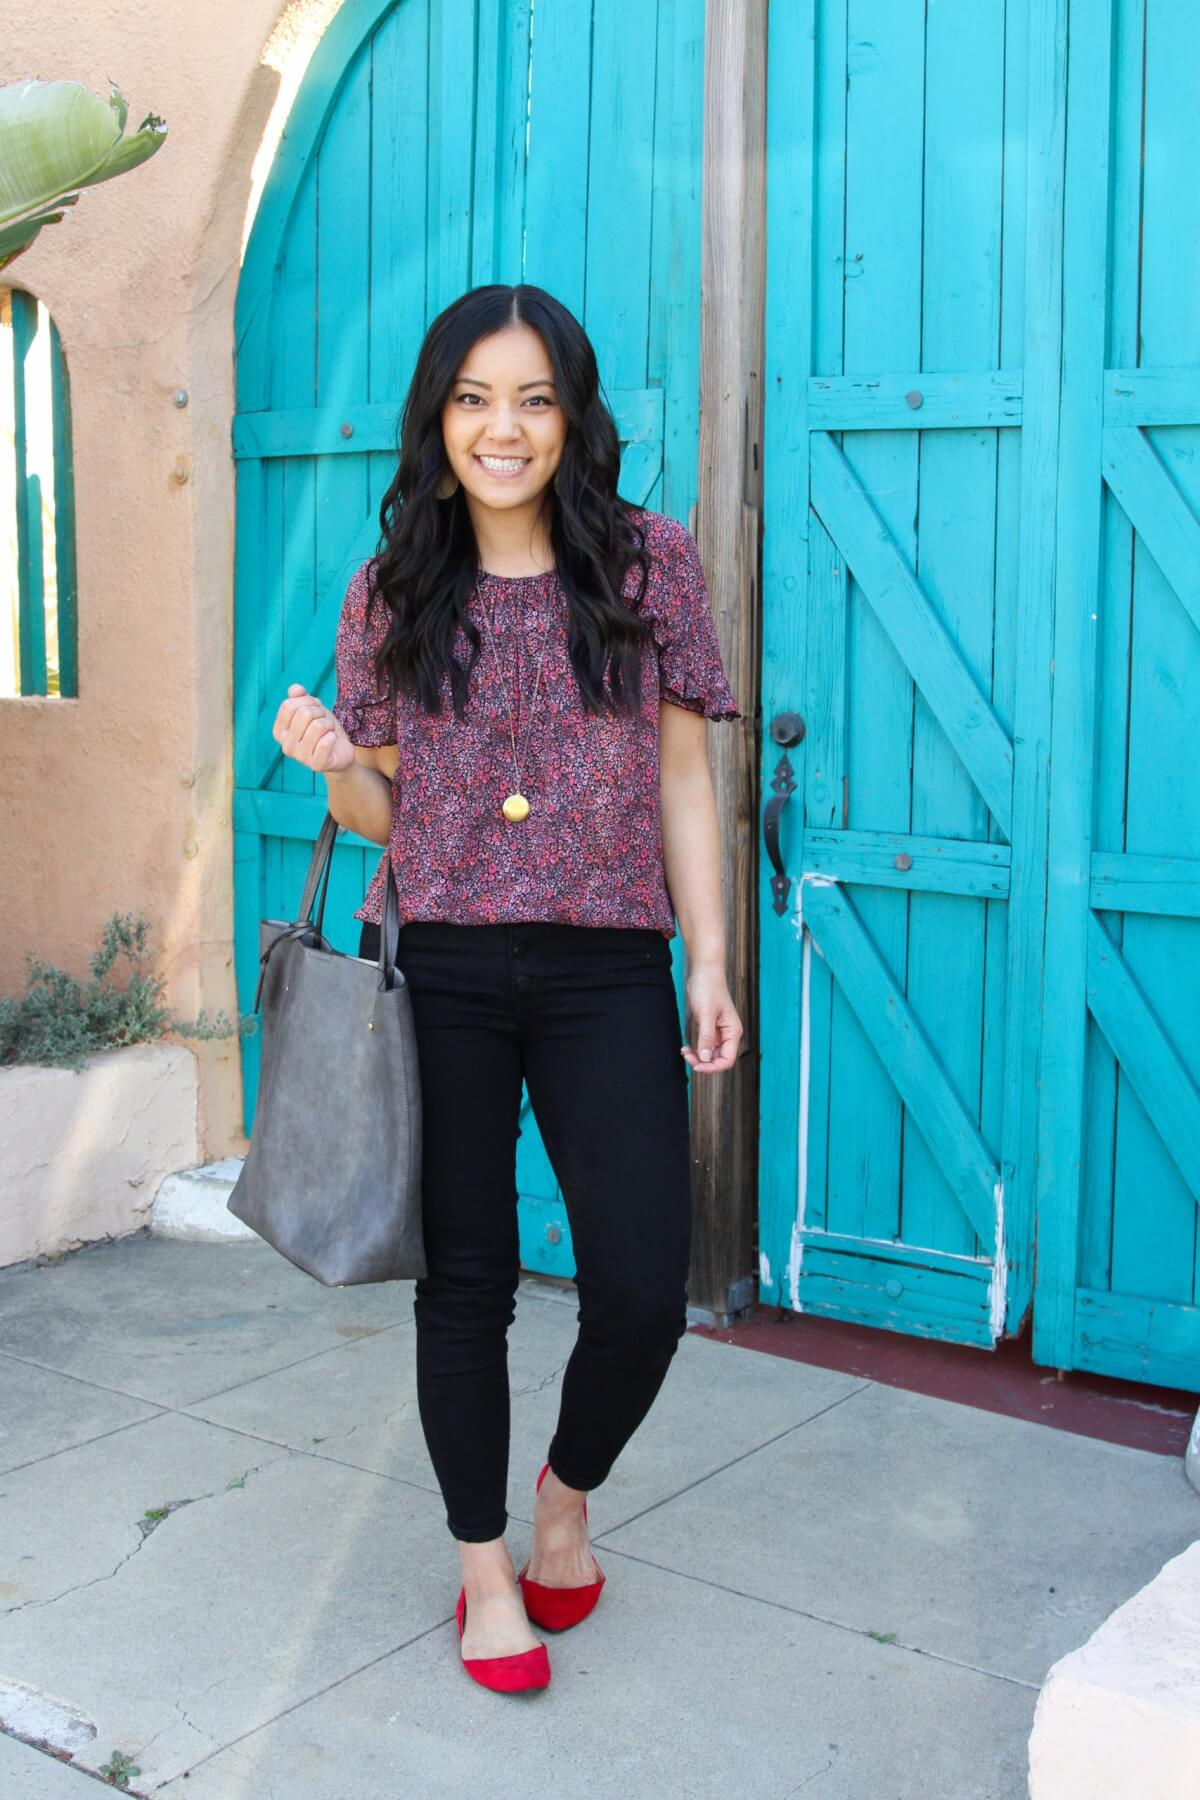 outfit with black jeans for spring: black jeans + colorful printed top